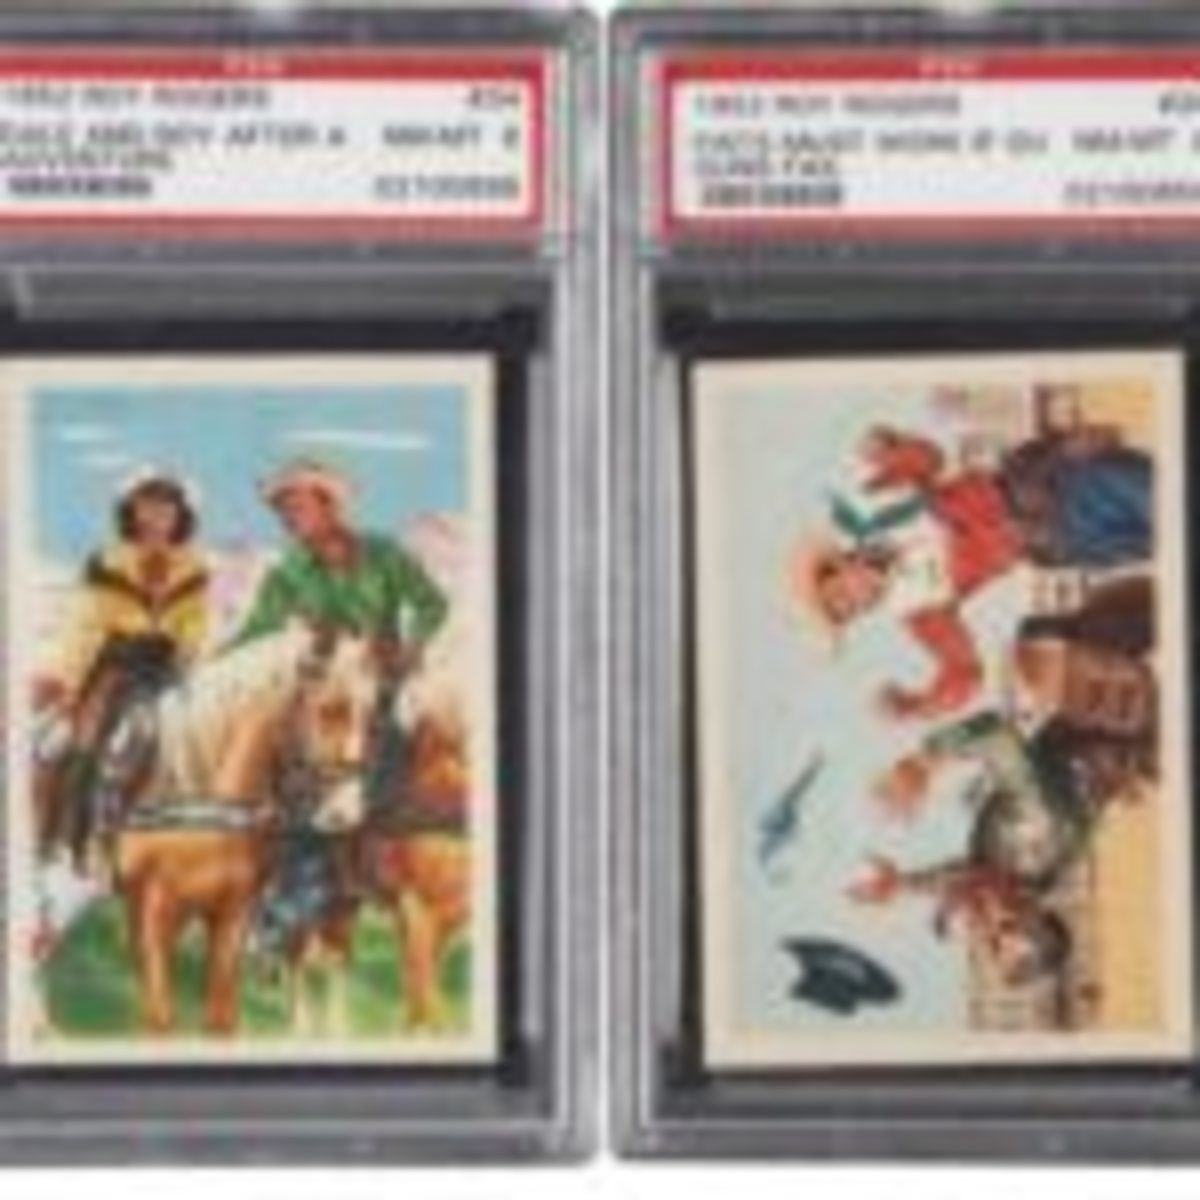 "Pair of 1952 Post Cereal Roy Rogers trading cards. Each has been graded NM-MT 8 by PSA, both are tied with three or four others at this, the highest grade level available. The beloved Western duo are featured on these rare cereal premiums which have some how managed to avoid the intended folding and separating to create a 3D-type scene. Includes: #'s 26 ""Fists Must Work If Guns Fail"" and 34 ""Dale and Roy After an Adventure."" The pair sold at auction for $262.90. Courtesy of Heritage Auctions"